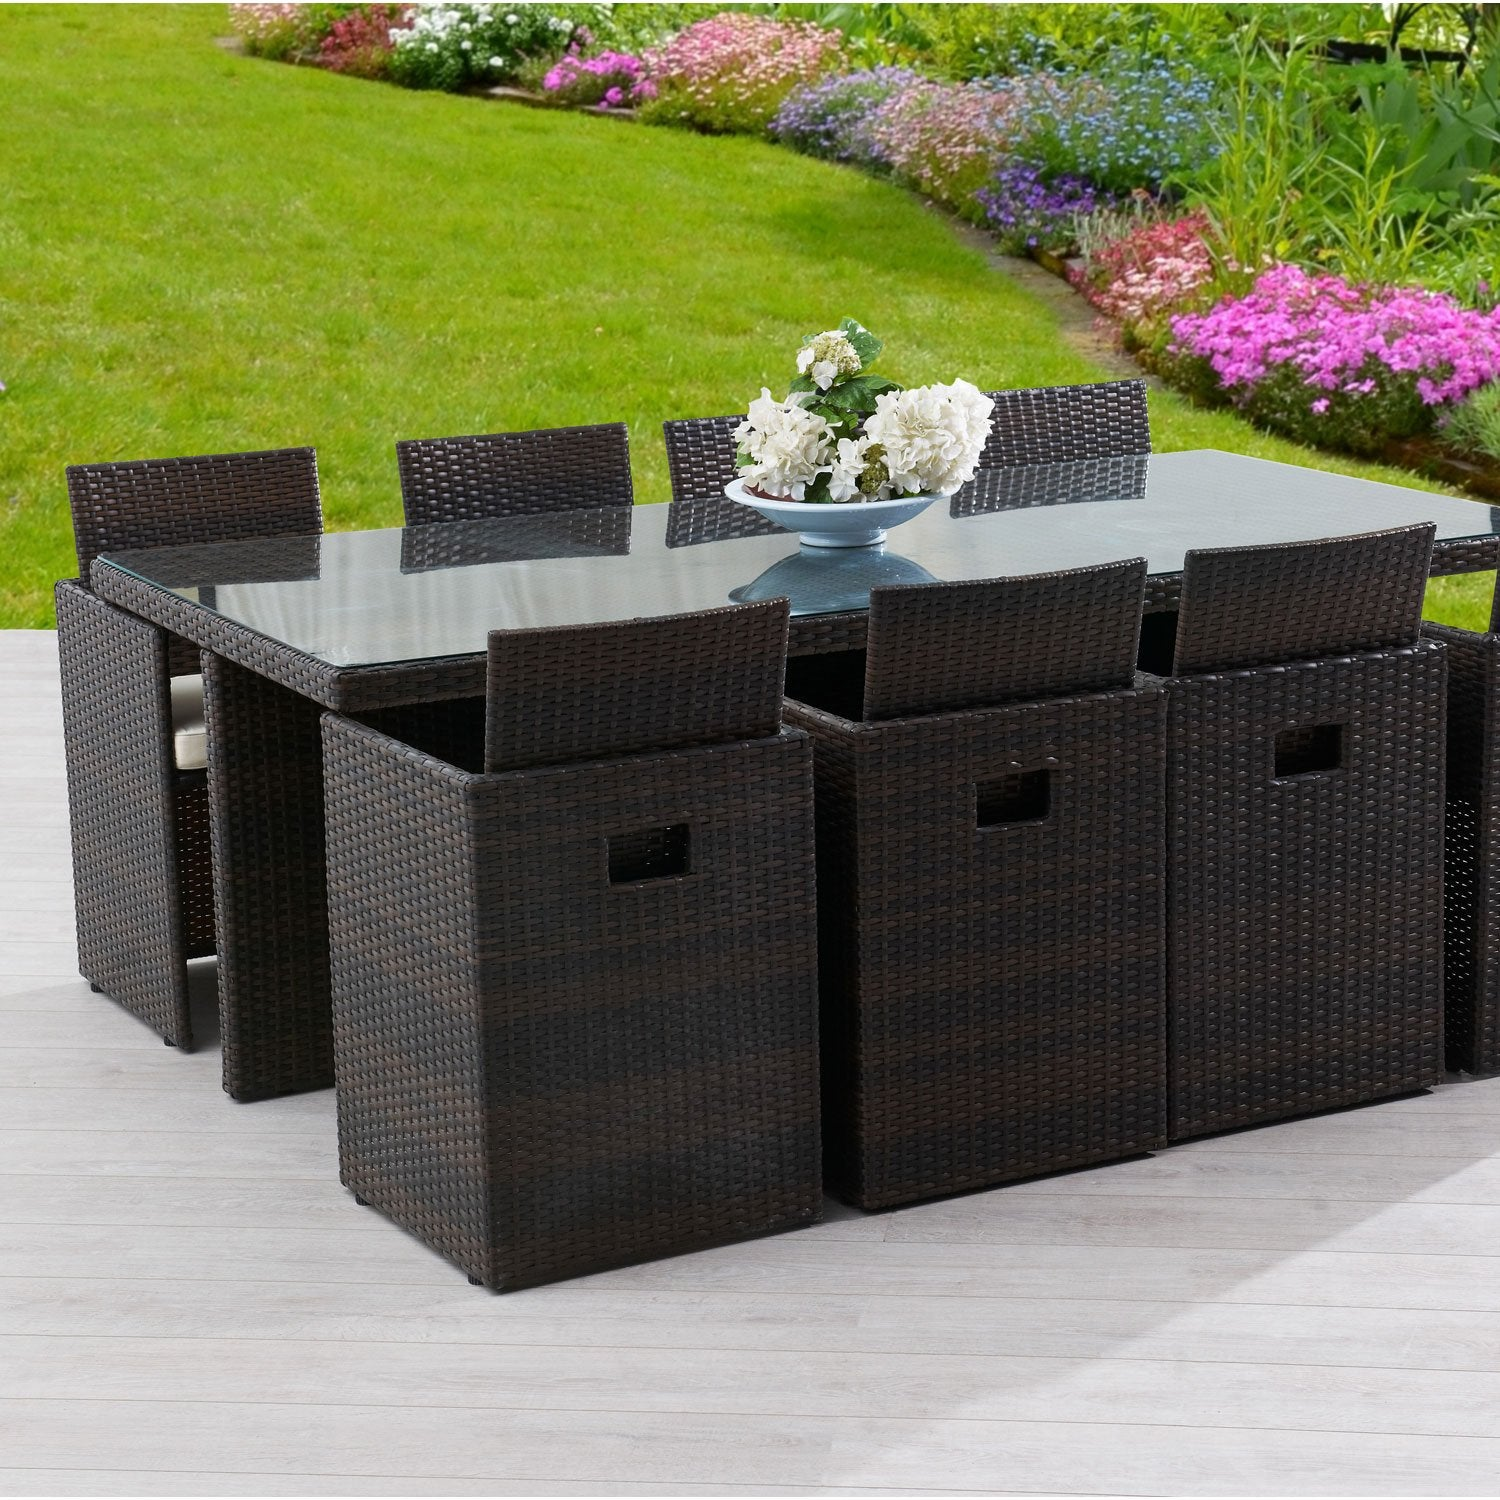 Salon de jardin leroy merlin for Leroy merlin table jardin